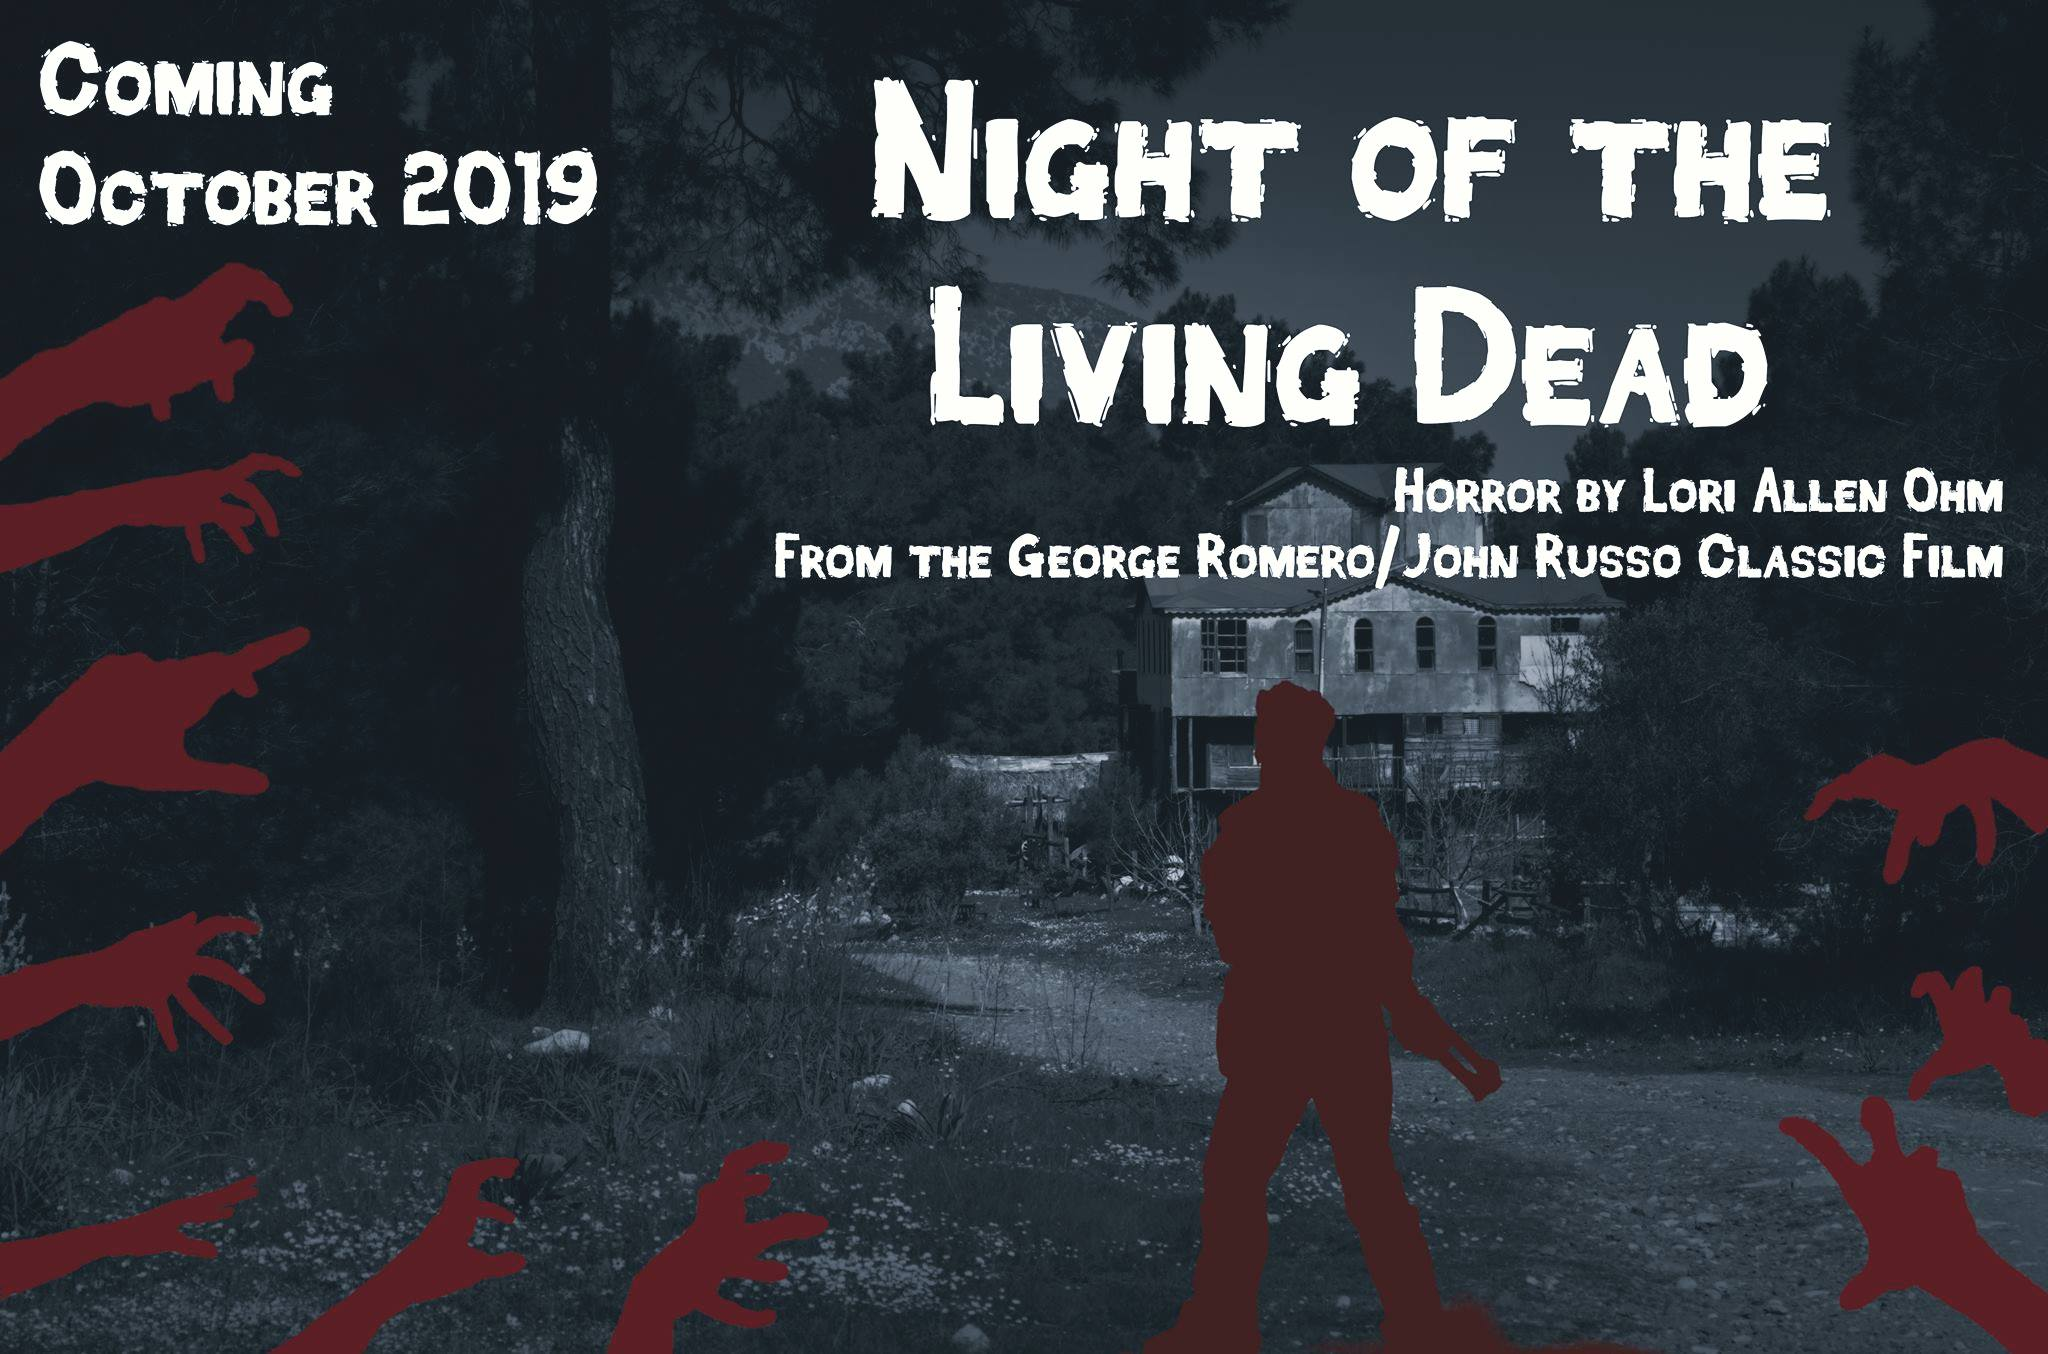 Night of the Living Dead Promo